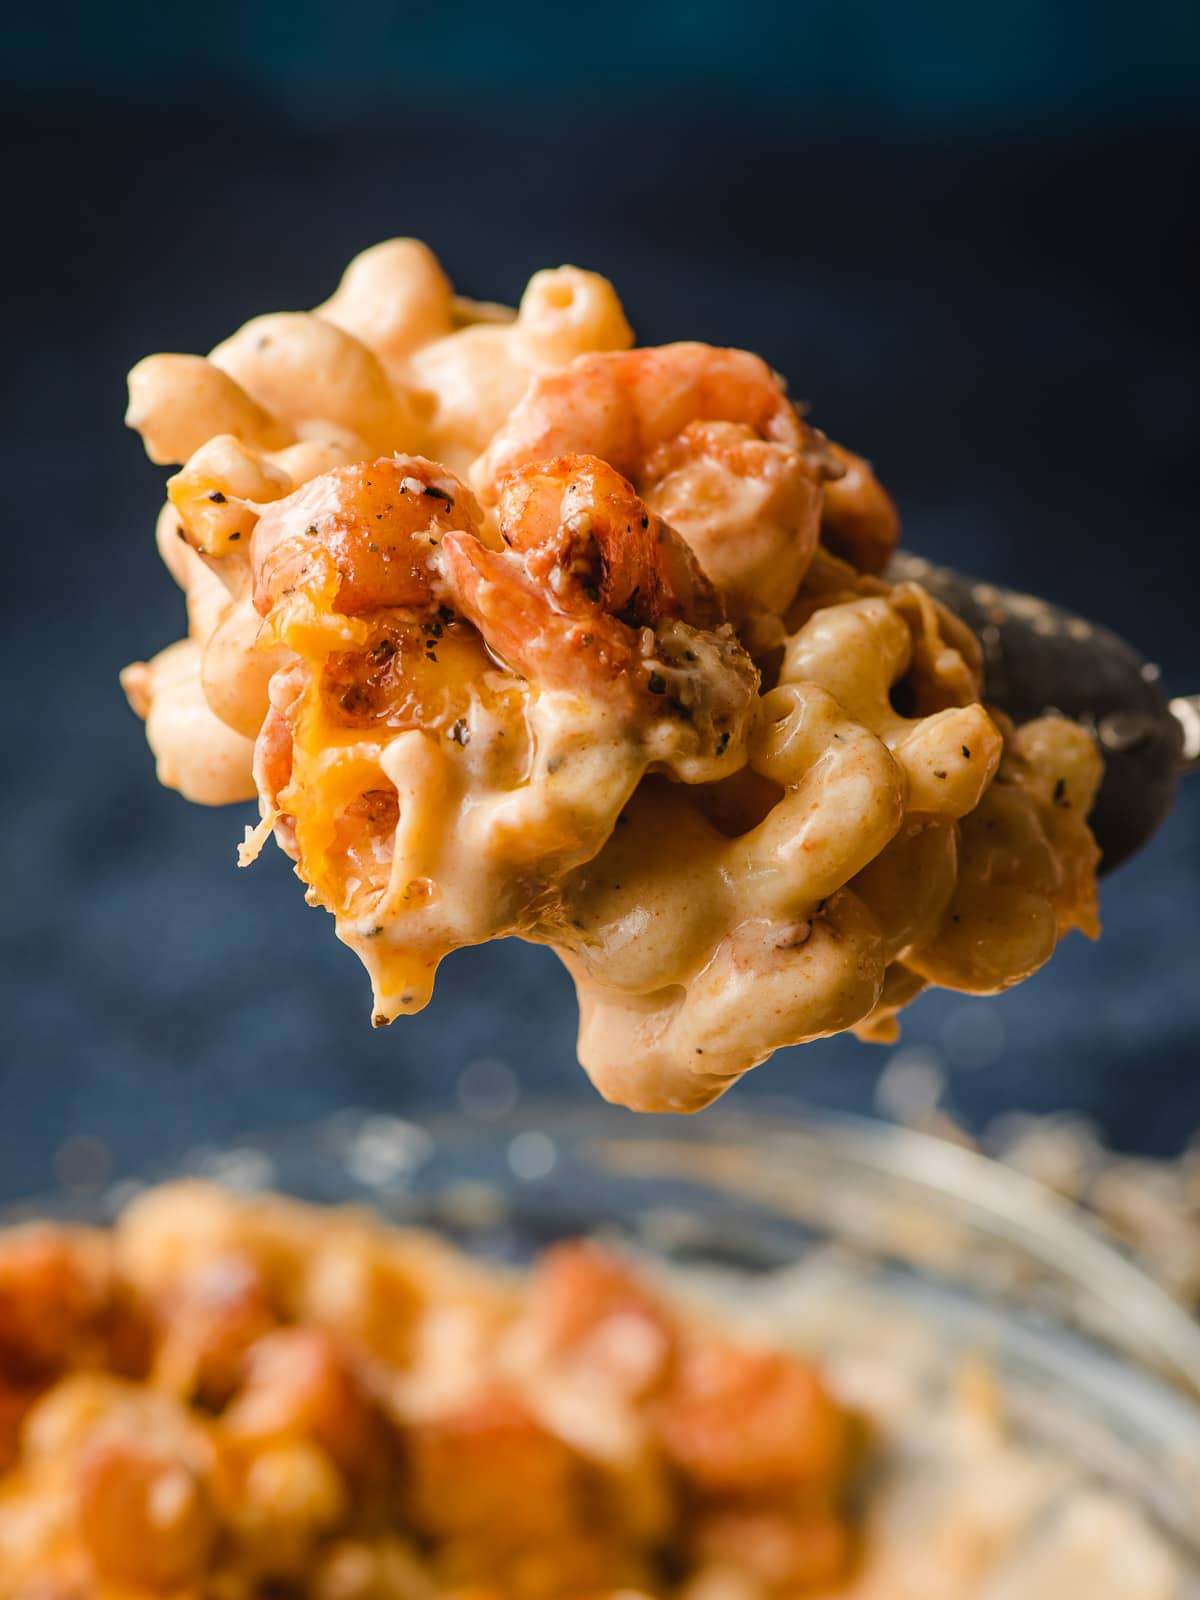 Scoop of Seafood Mac and Cheese.